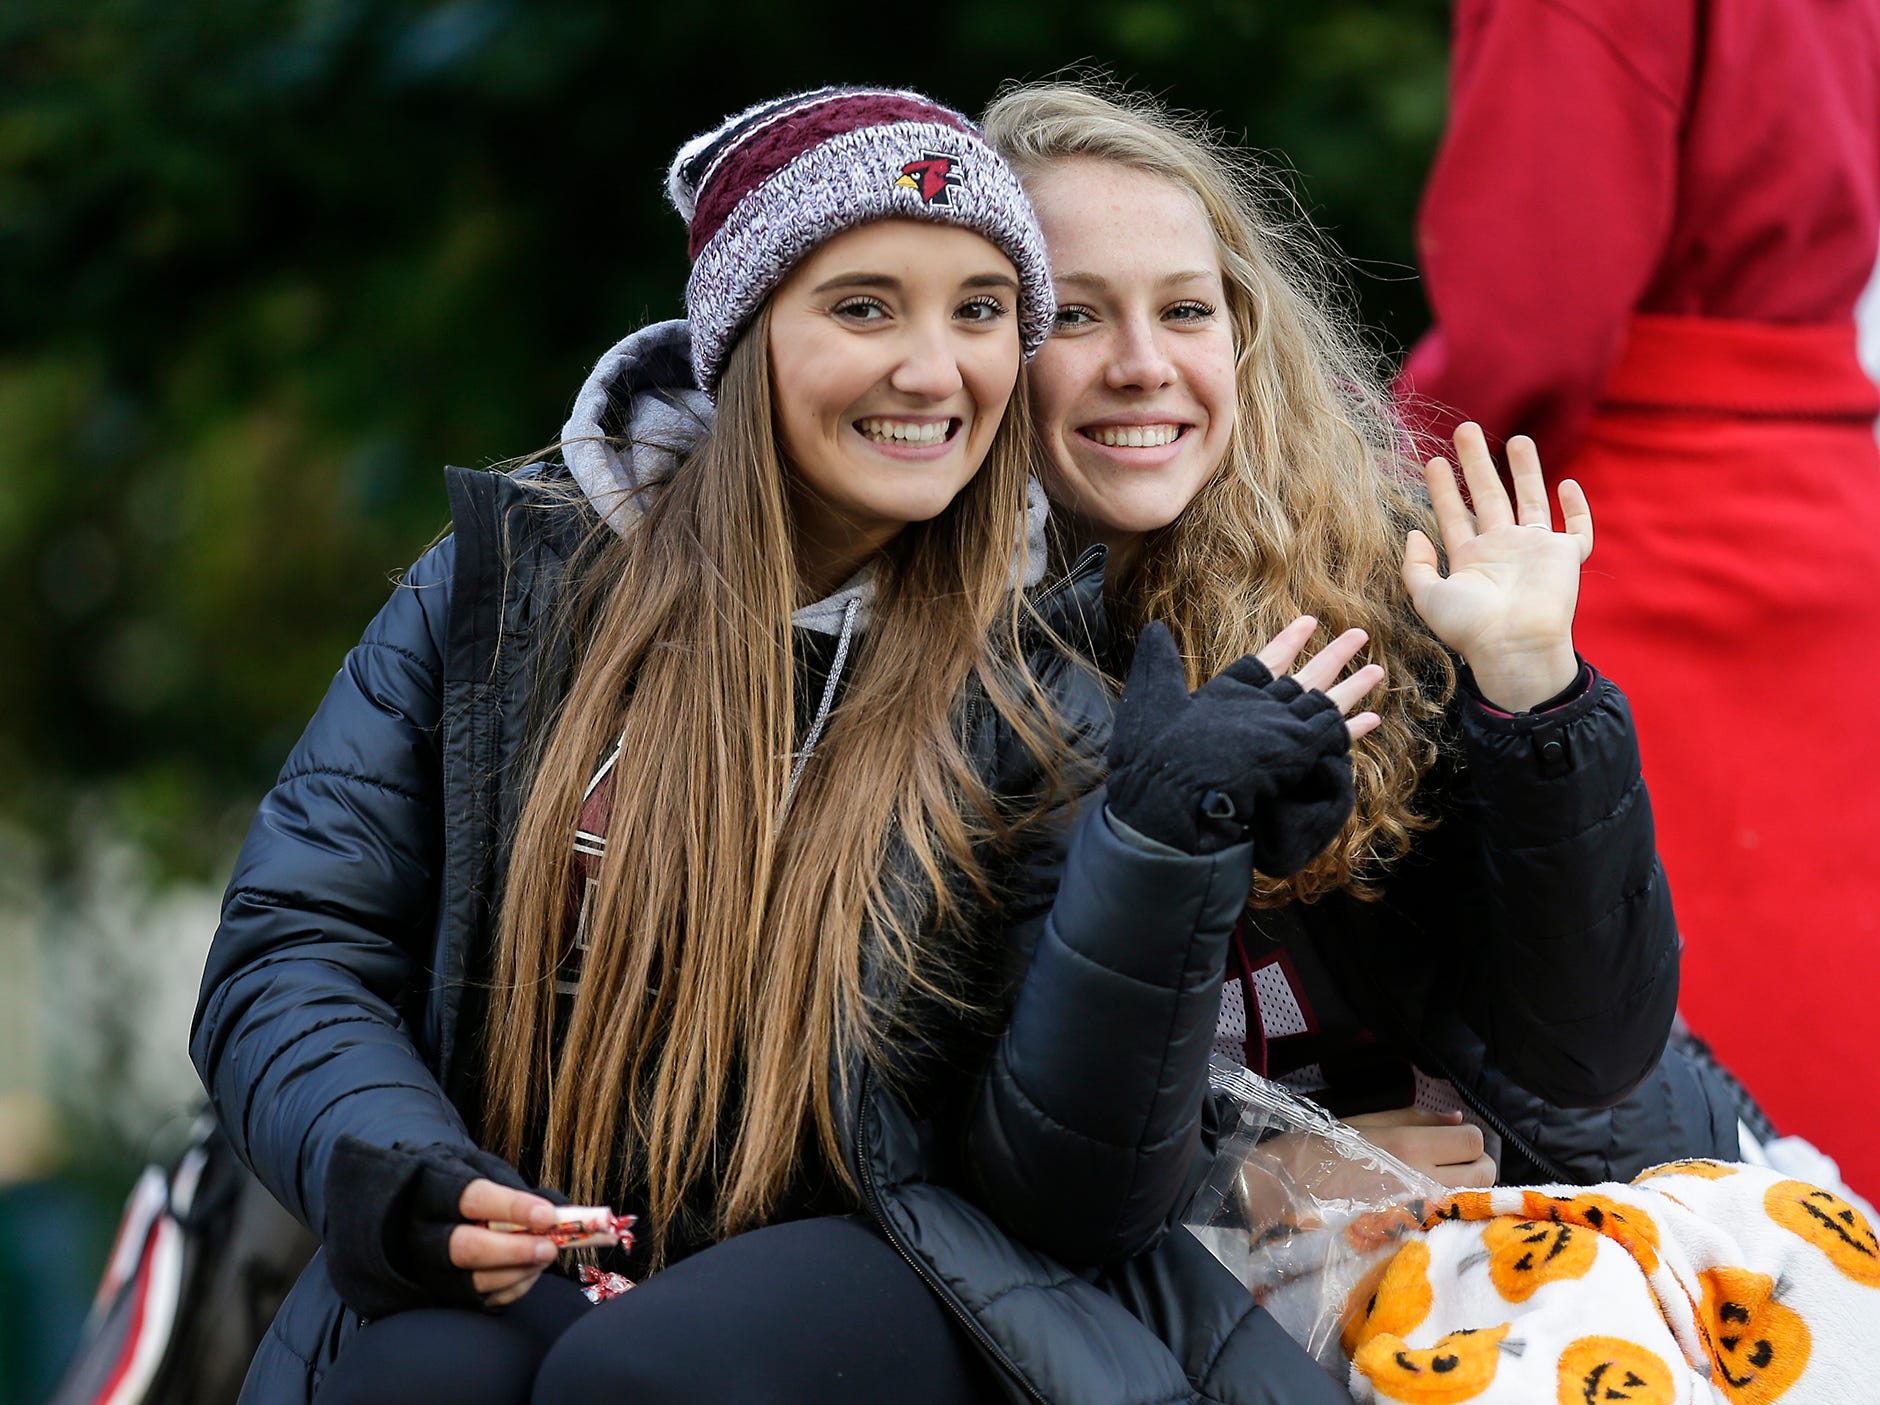 Fond du Lac High School girls golf members Jaydin Romalia and Talya Loken ride in the Fond du Lac High School football homecoming parade Friday, Sept. 28, 2018, which went down portions of Martin Avenue and Ninth Street in Fond du Lac, Wisconsin.